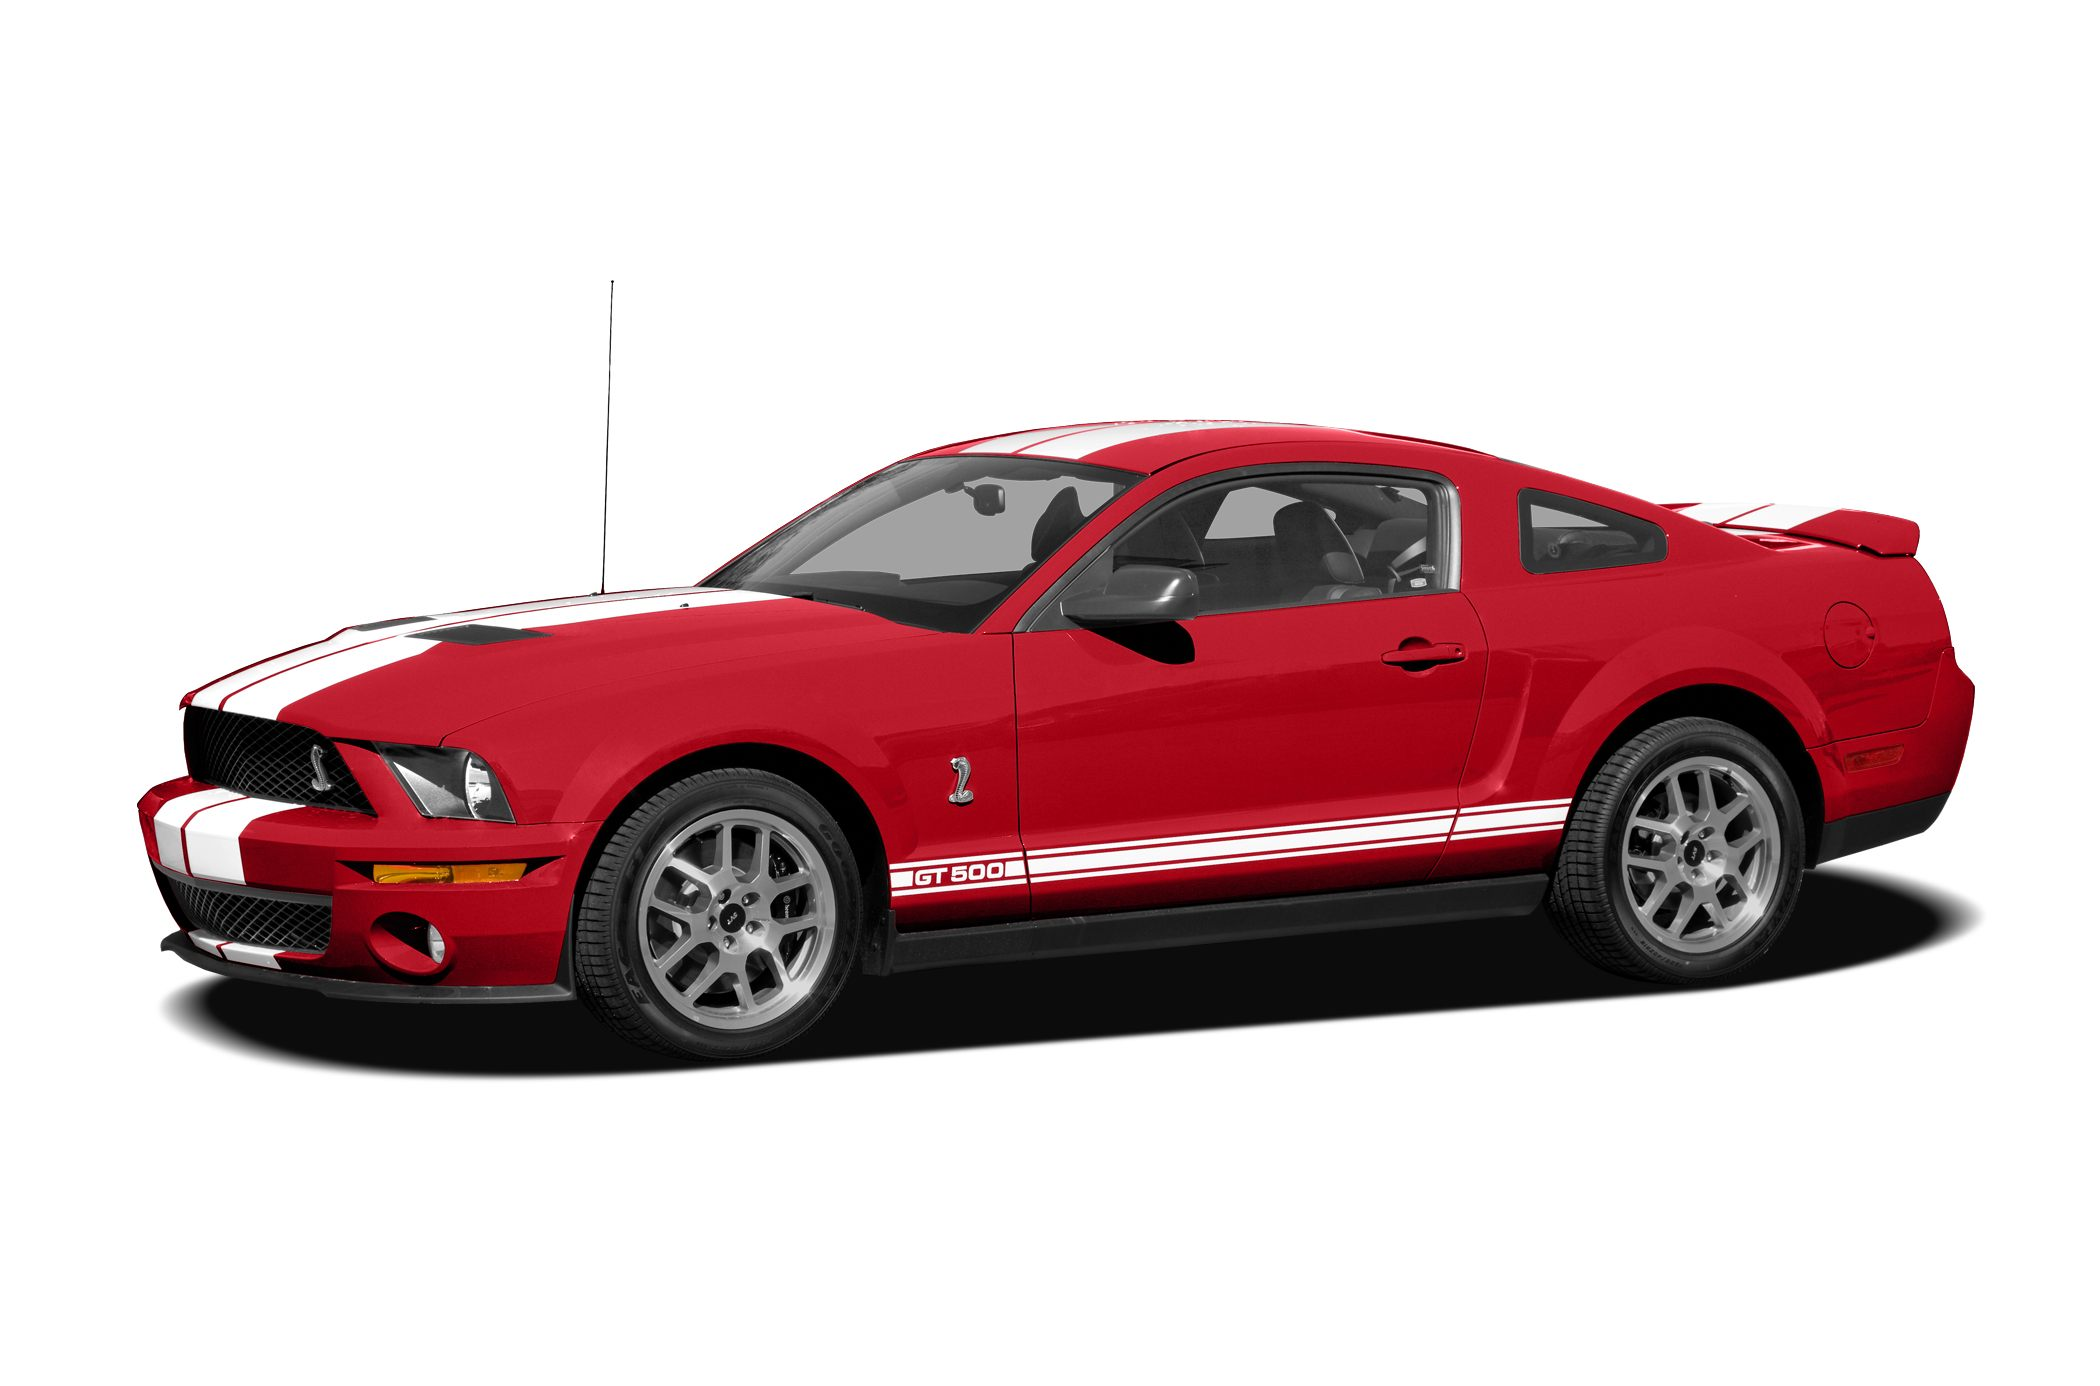 2008 Ford Mustang Shelby GT500 54L V8 DOHC Supercharged 6 speed manual Its time for West Coast